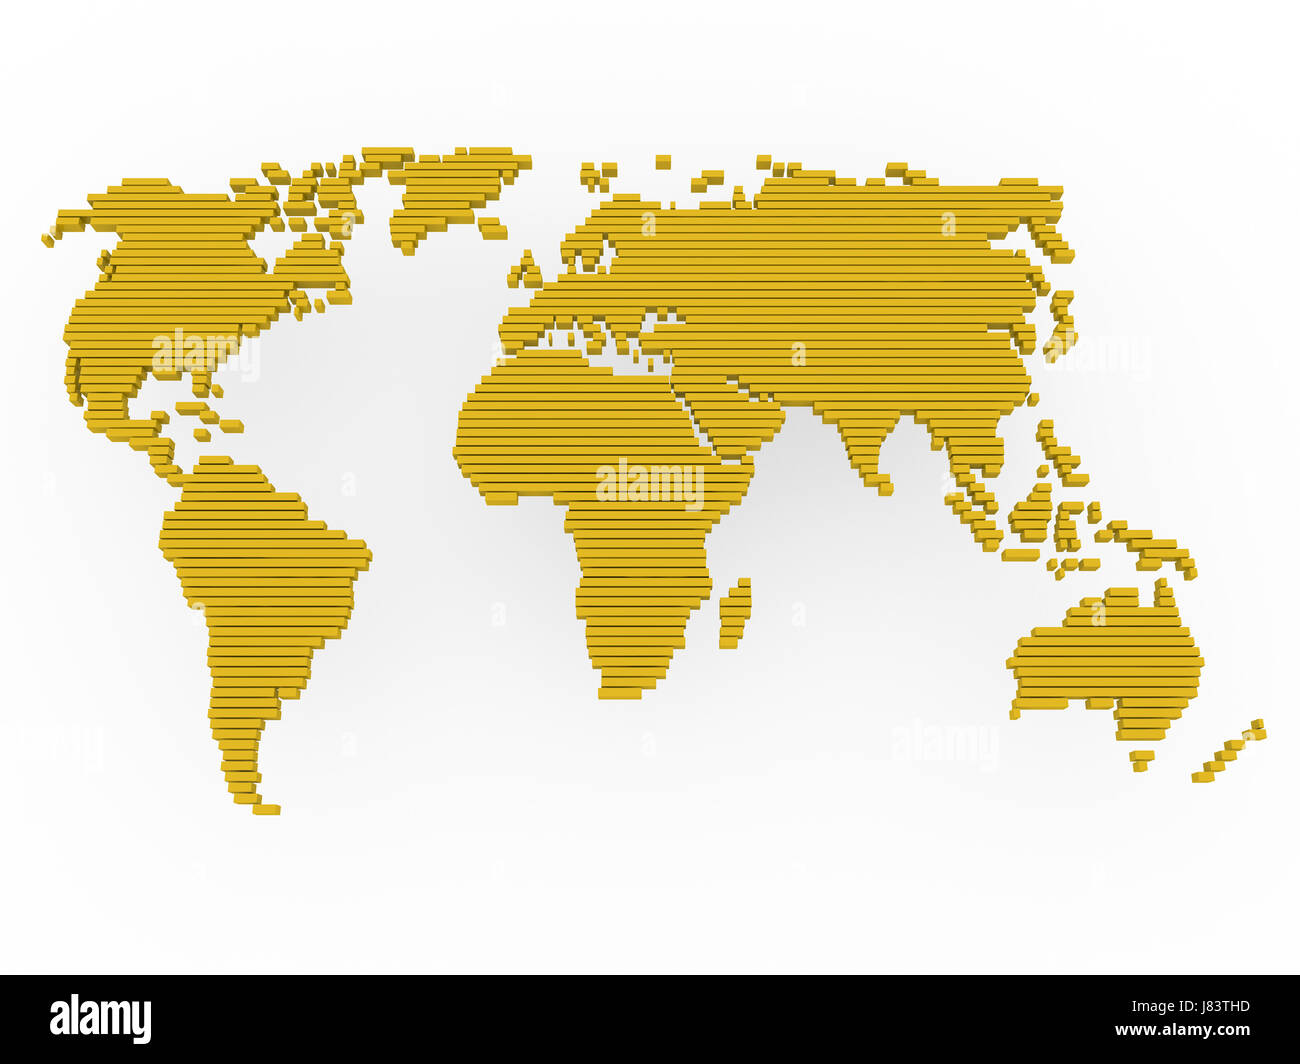 Africa europe america globe planet earth world map atlas map of the africa europe america globe planet earth world map atlas map of the world gold gumiabroncs Choice Image